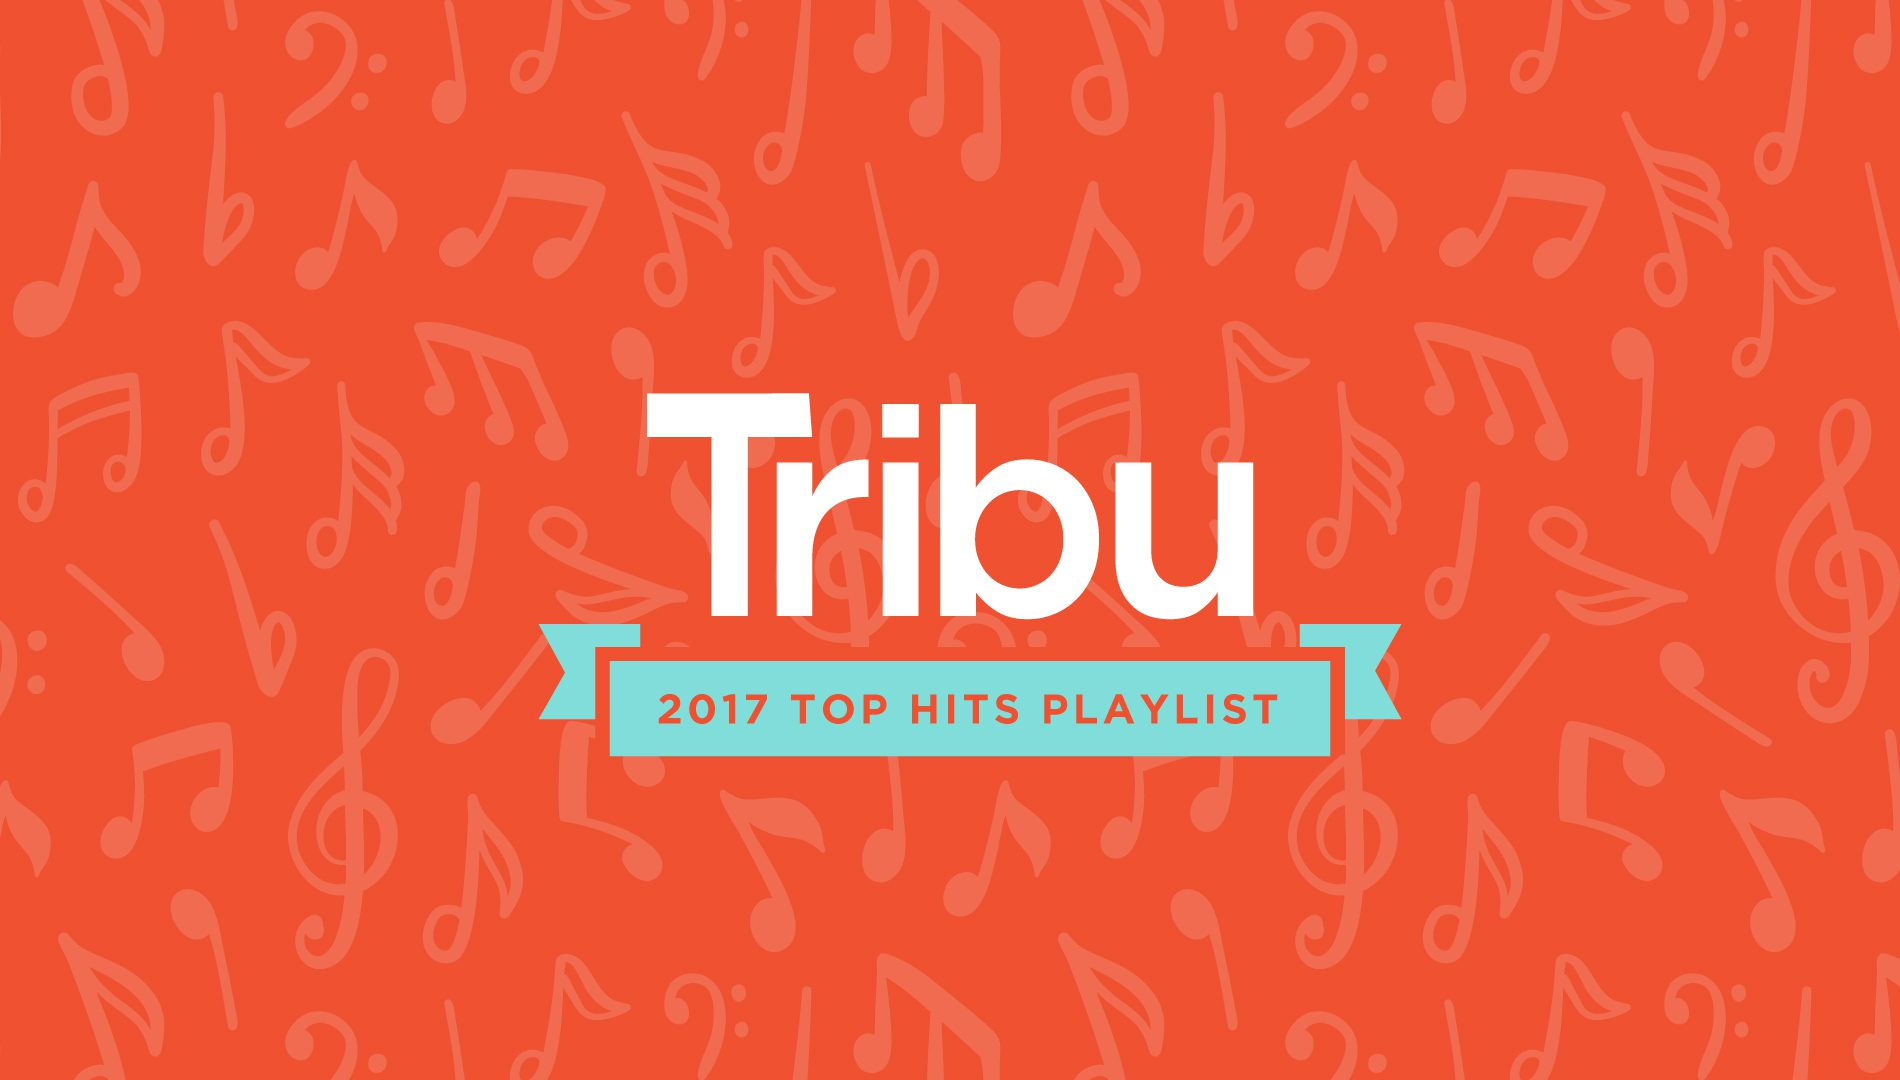 Tribu San Antonio Texas digital marketing advertising graphic design content strategy social media agency firm 2017 2018 holiday playlist Spotify Tribe wearetribu top hits music life culture art expression soundtrack